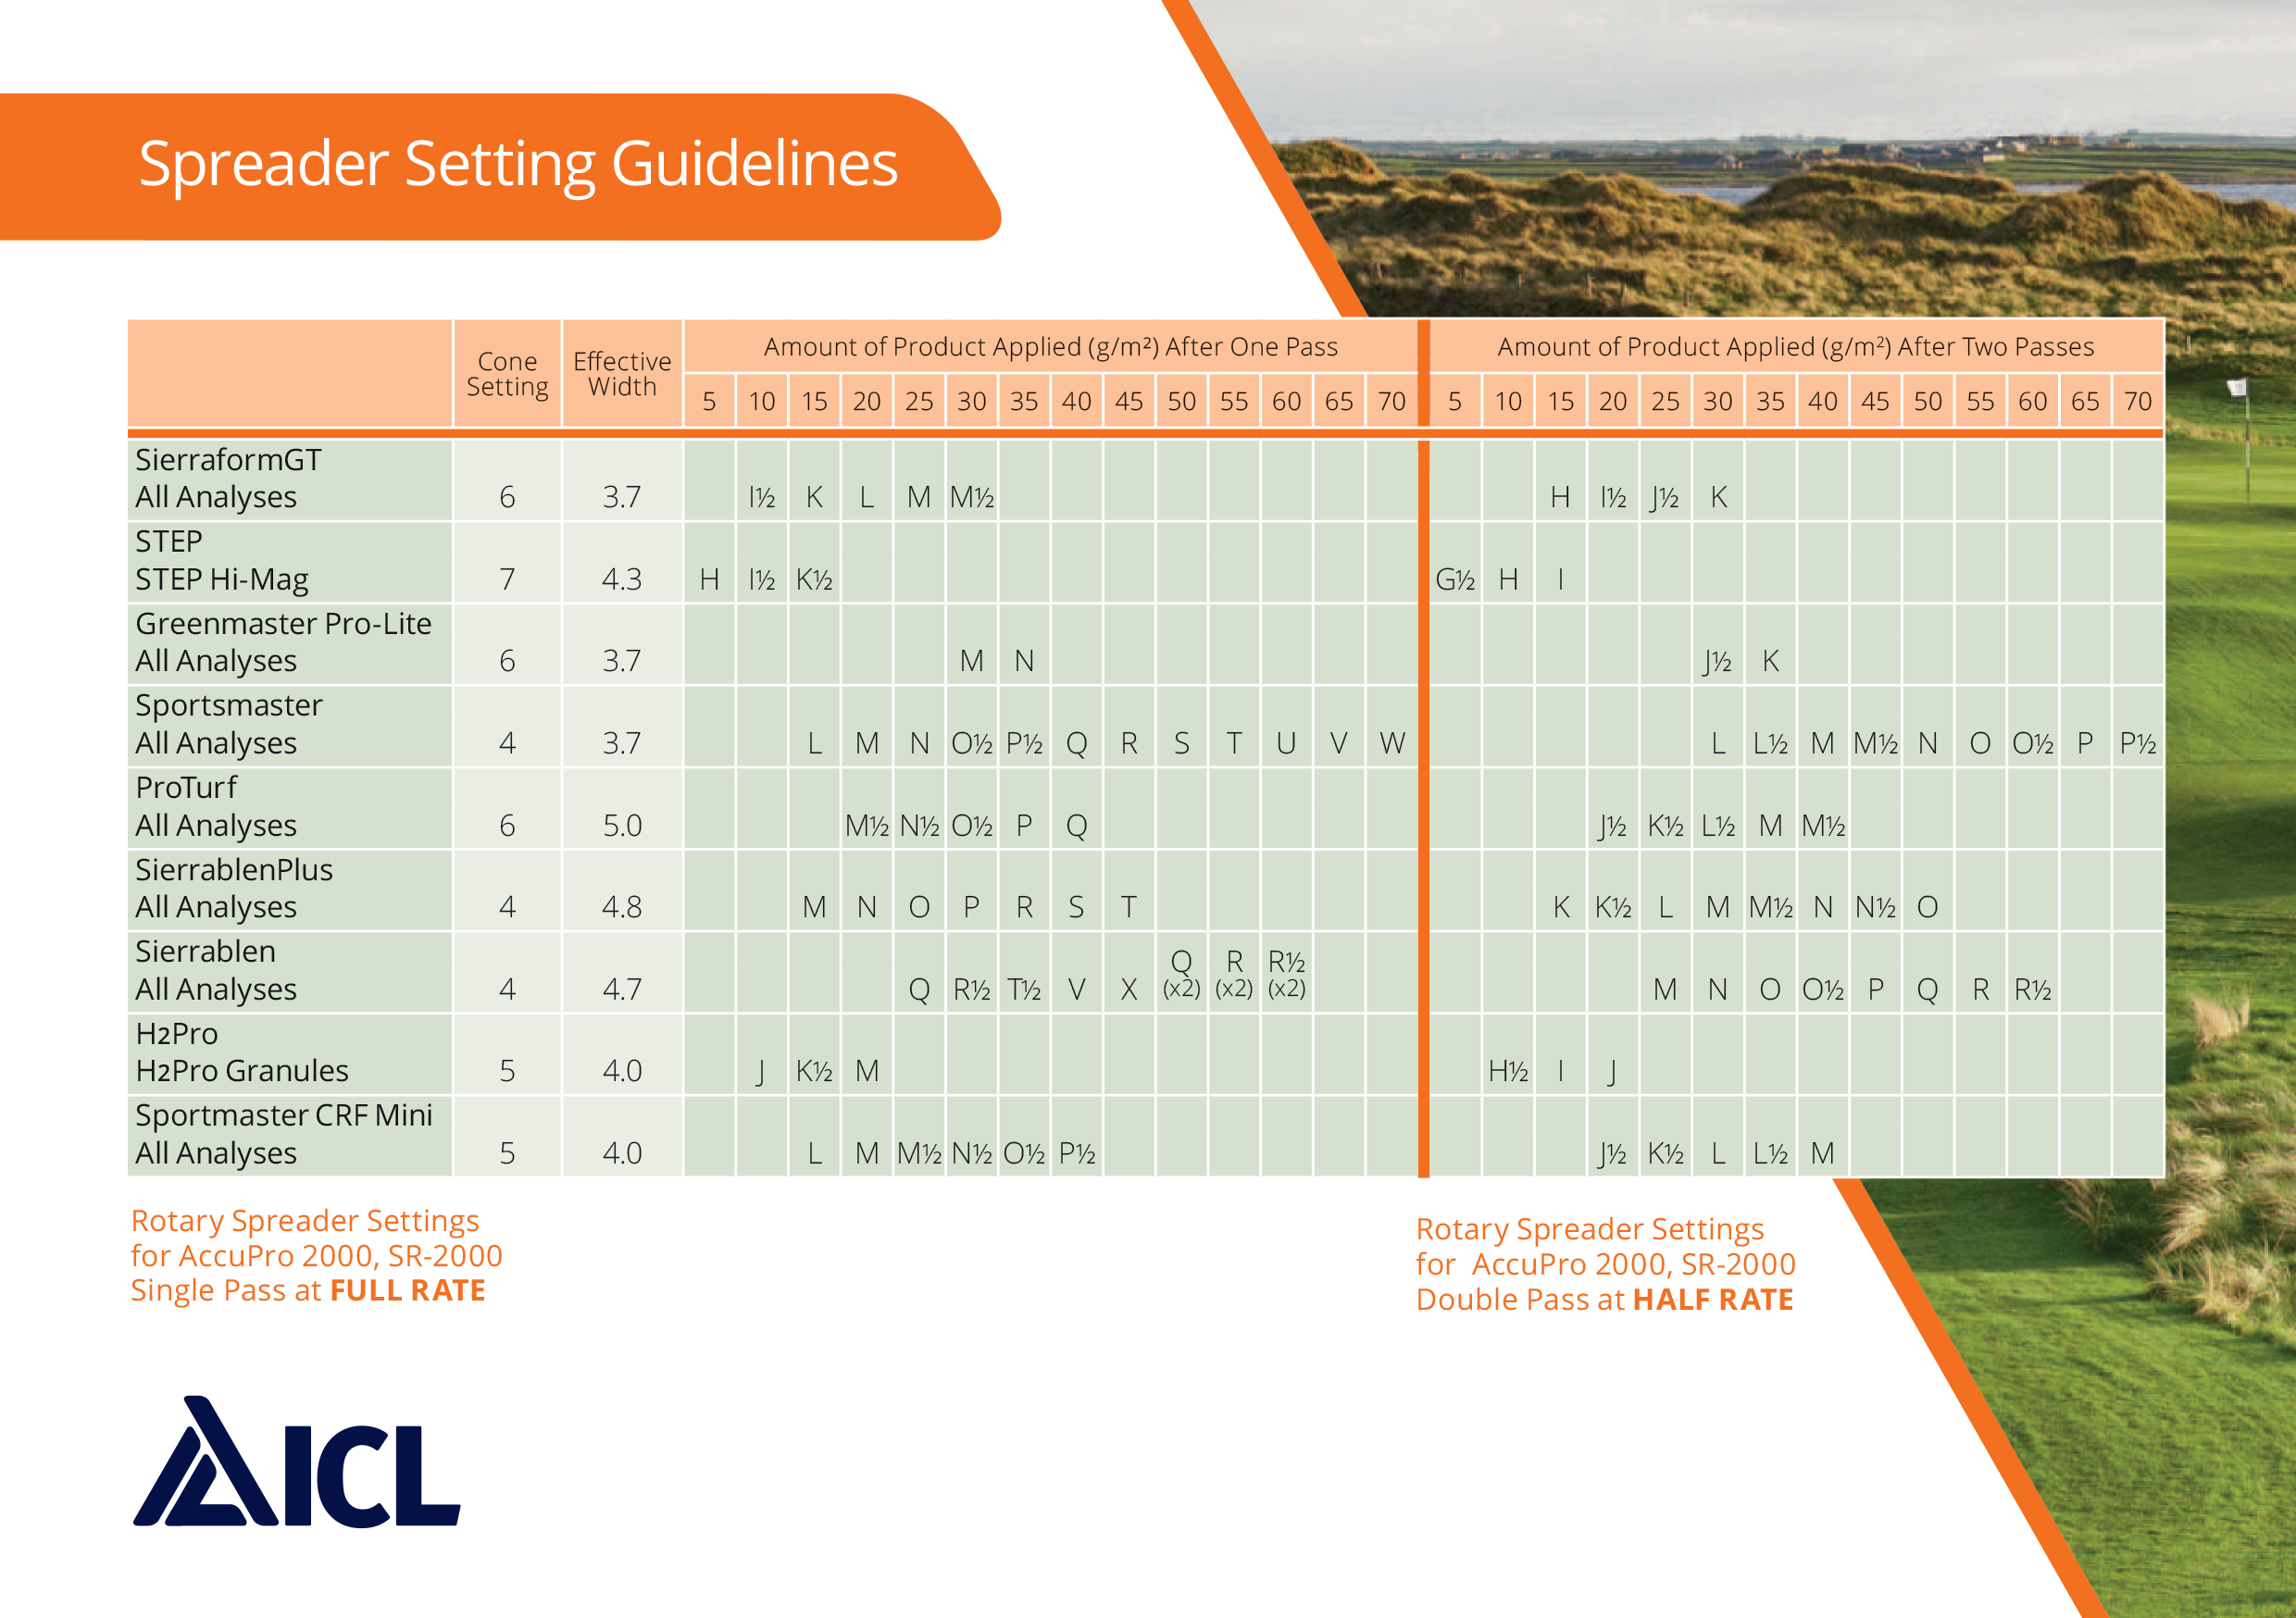 icl table of spreader settings